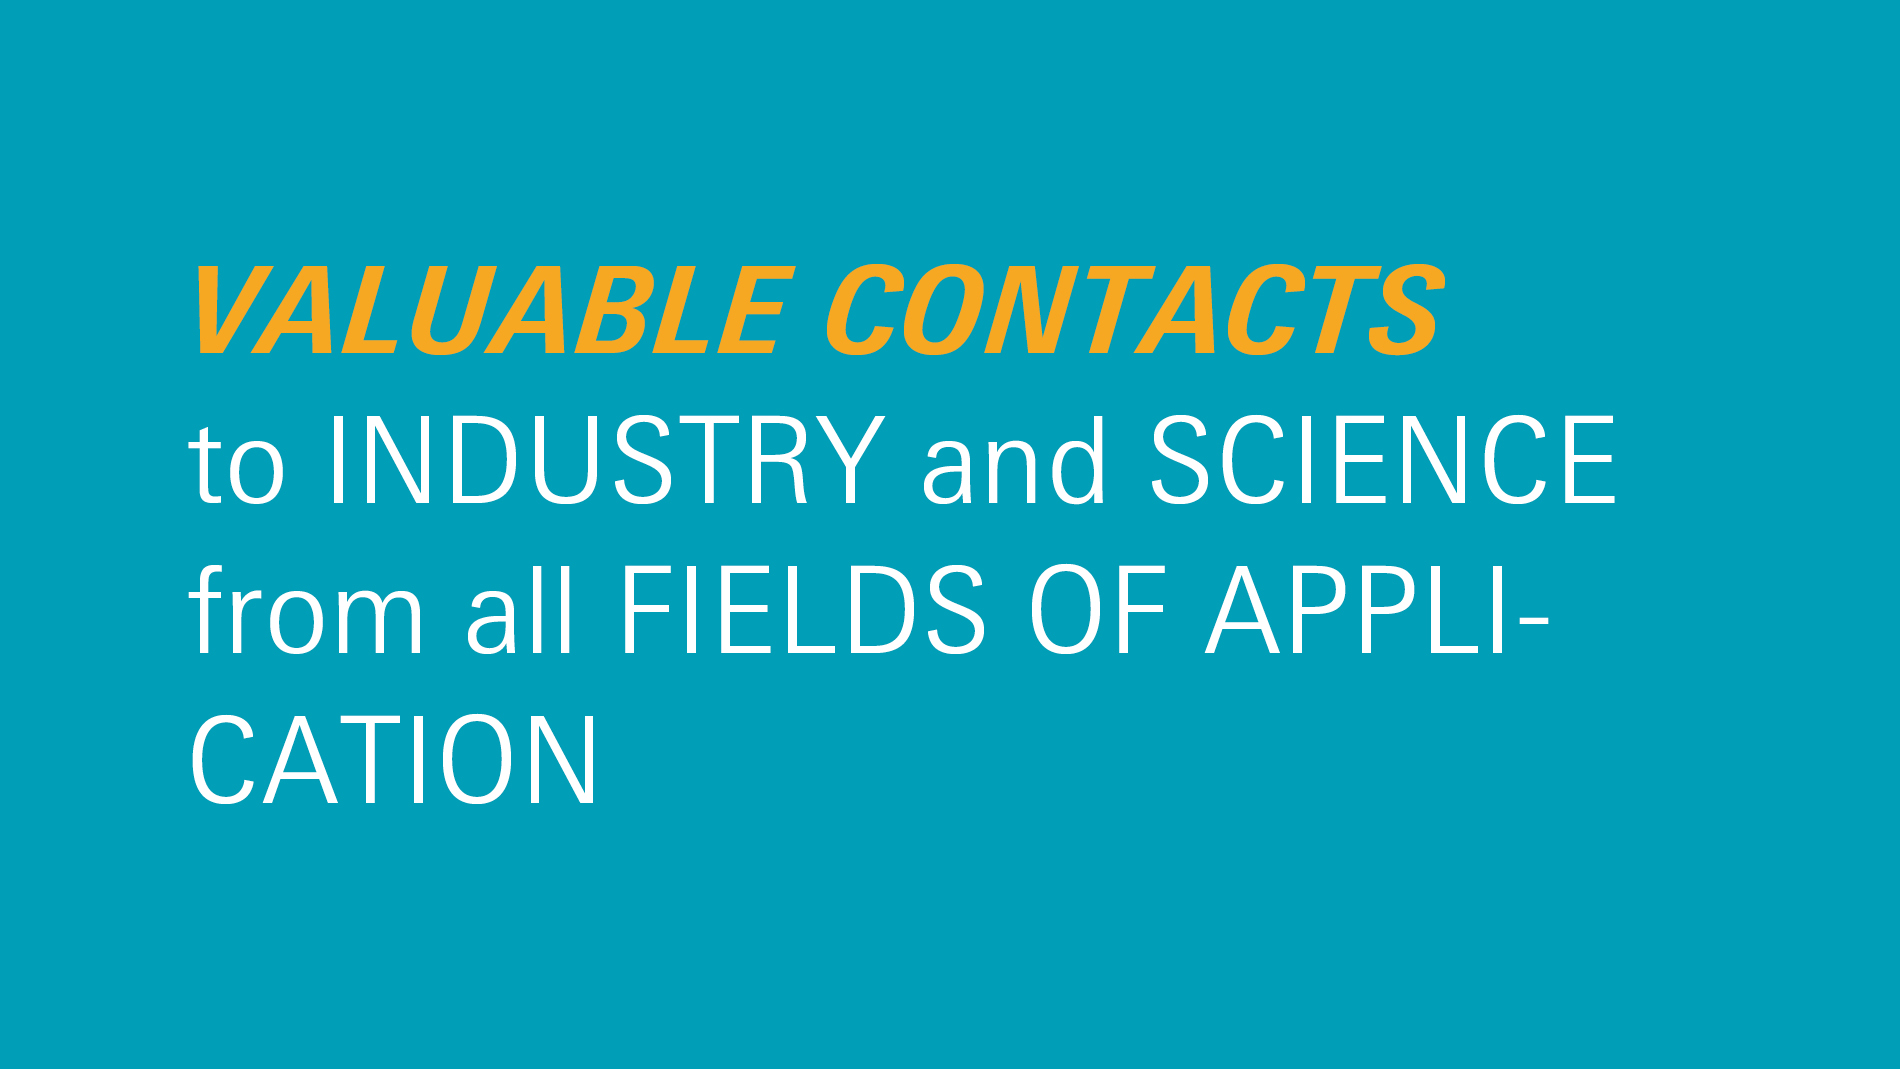 Valuable contacts to industry and science from all fields of application